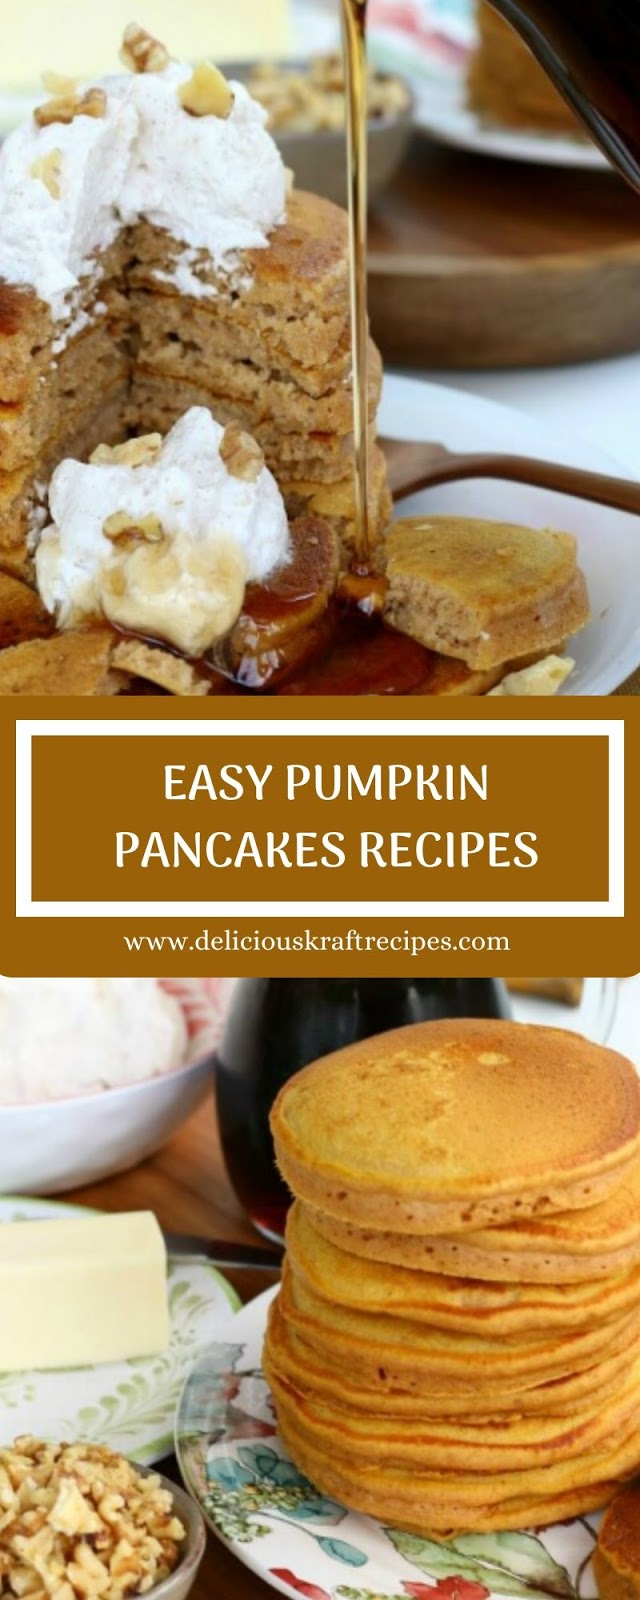 EASY PUMPKIN PANCAKES RECIPES